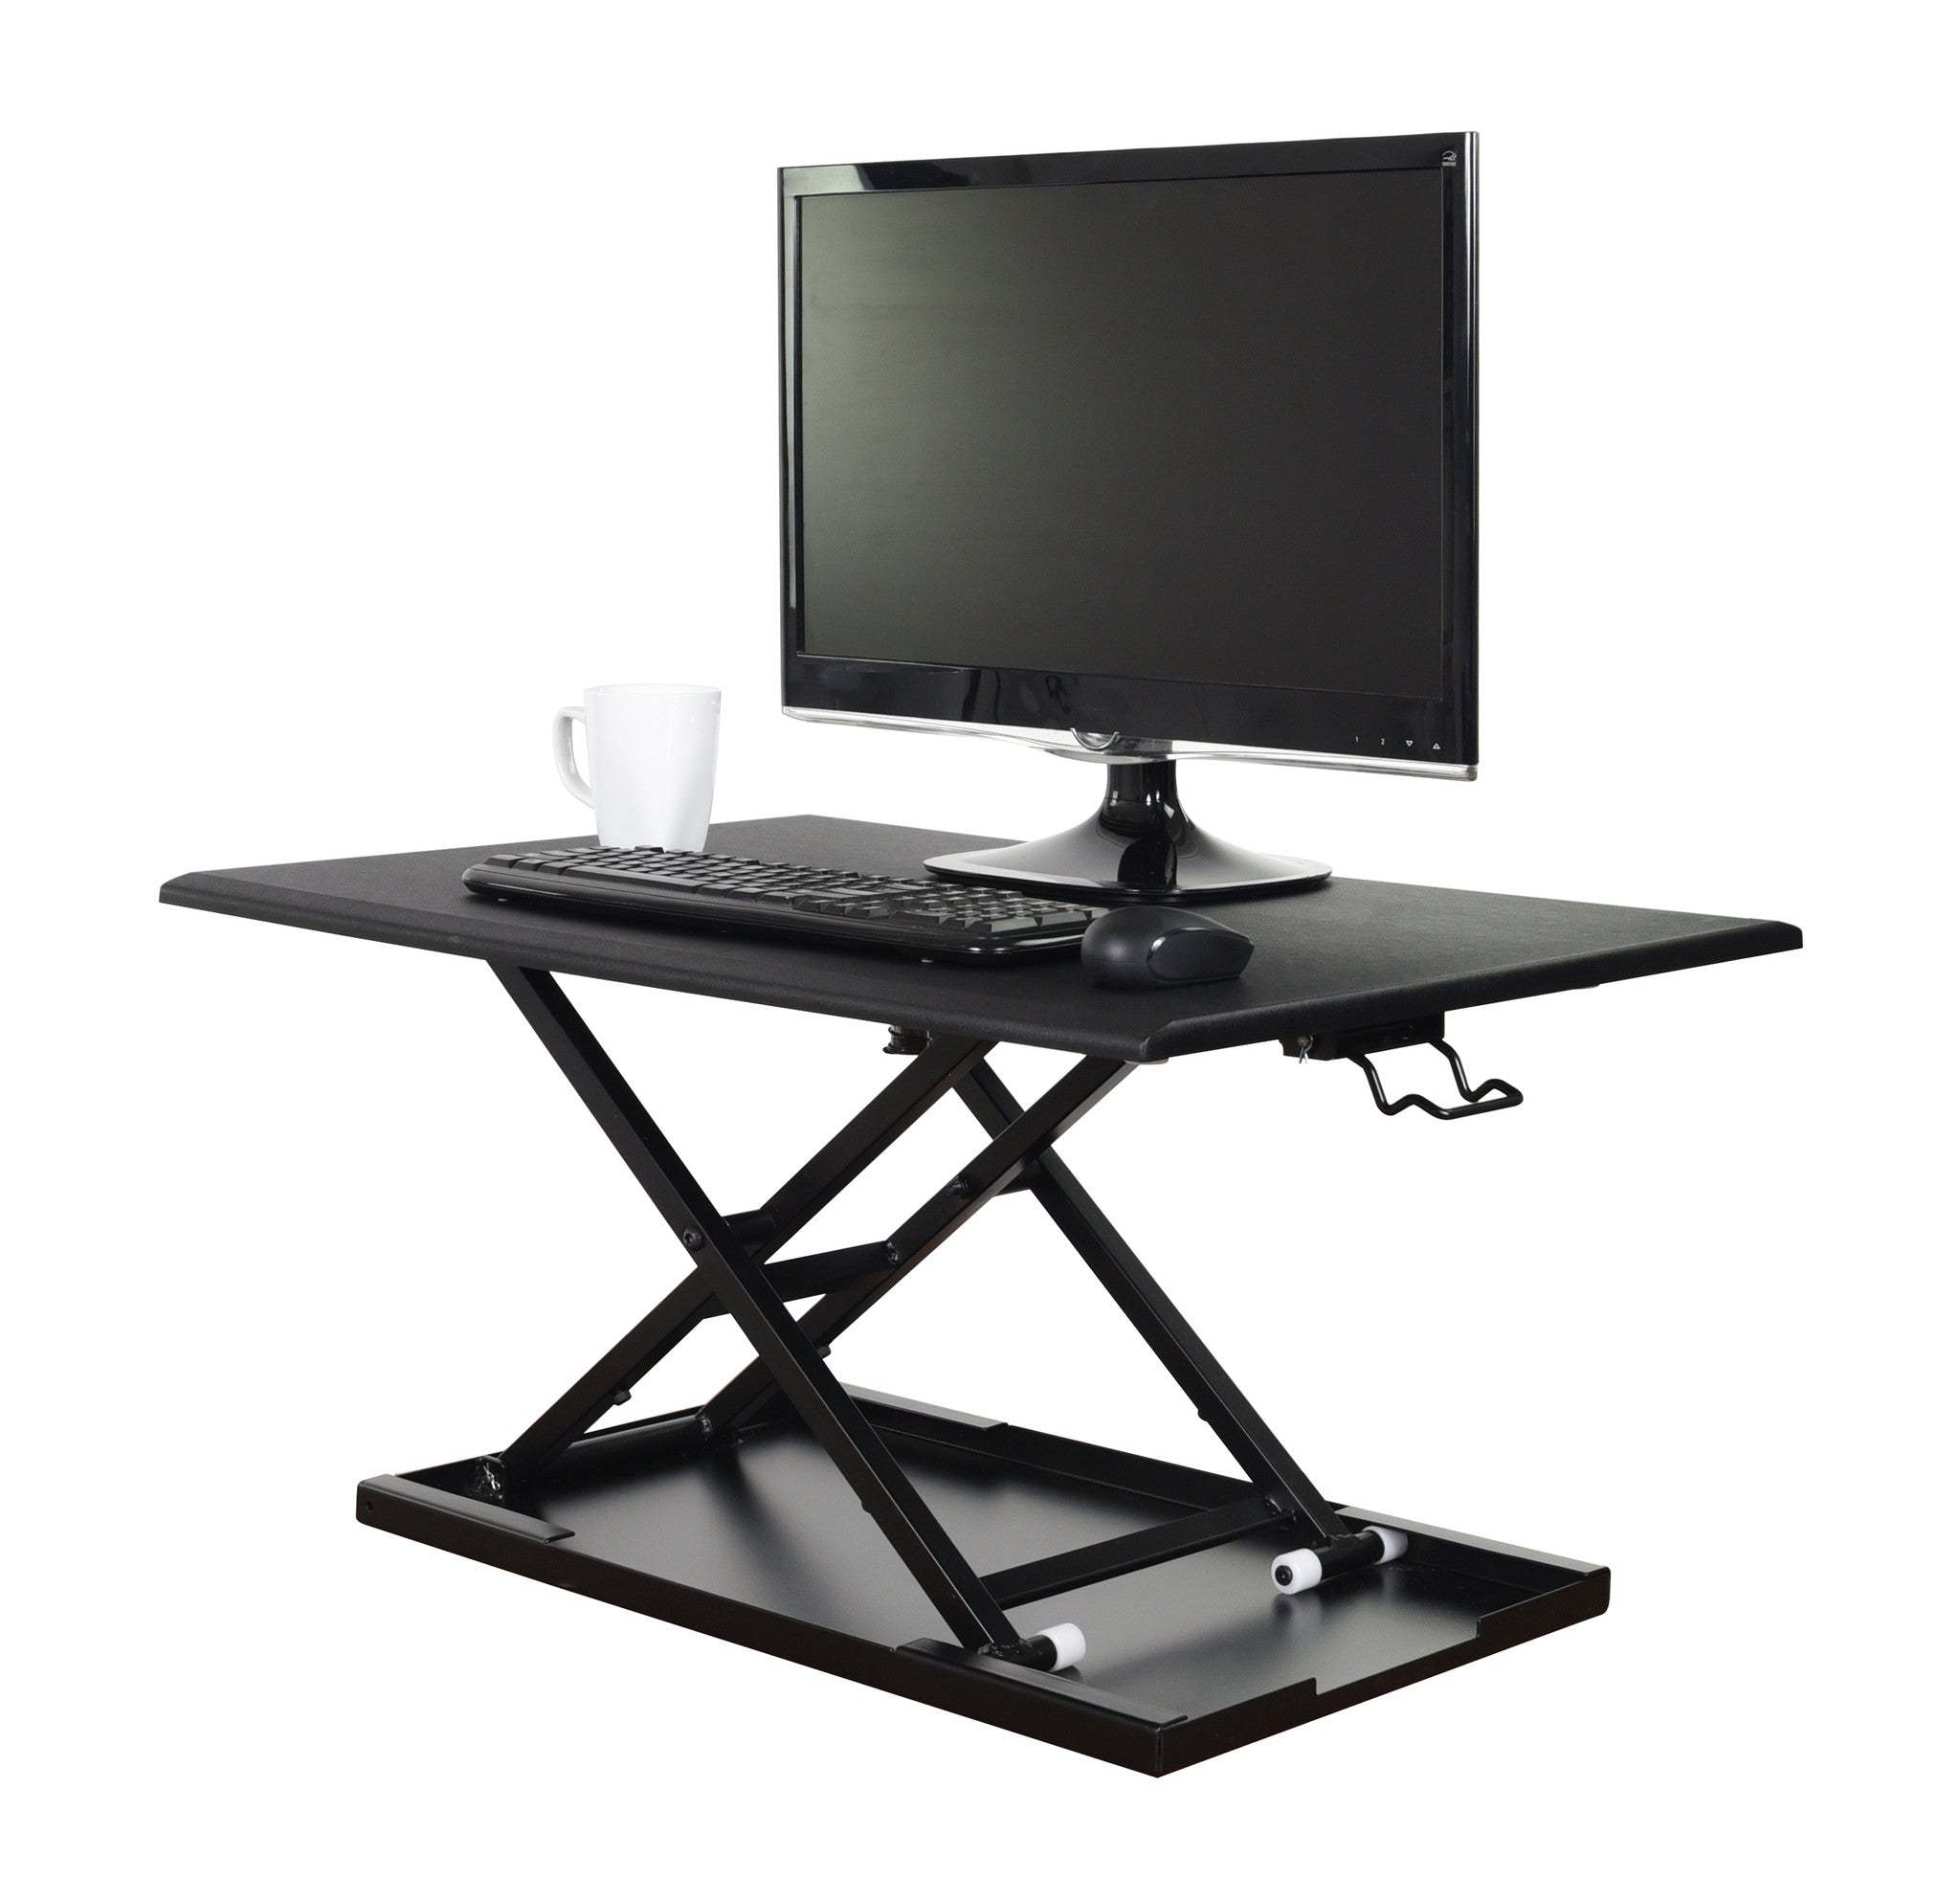 Luxor Level Up 32 Adjustable Desktop Desk